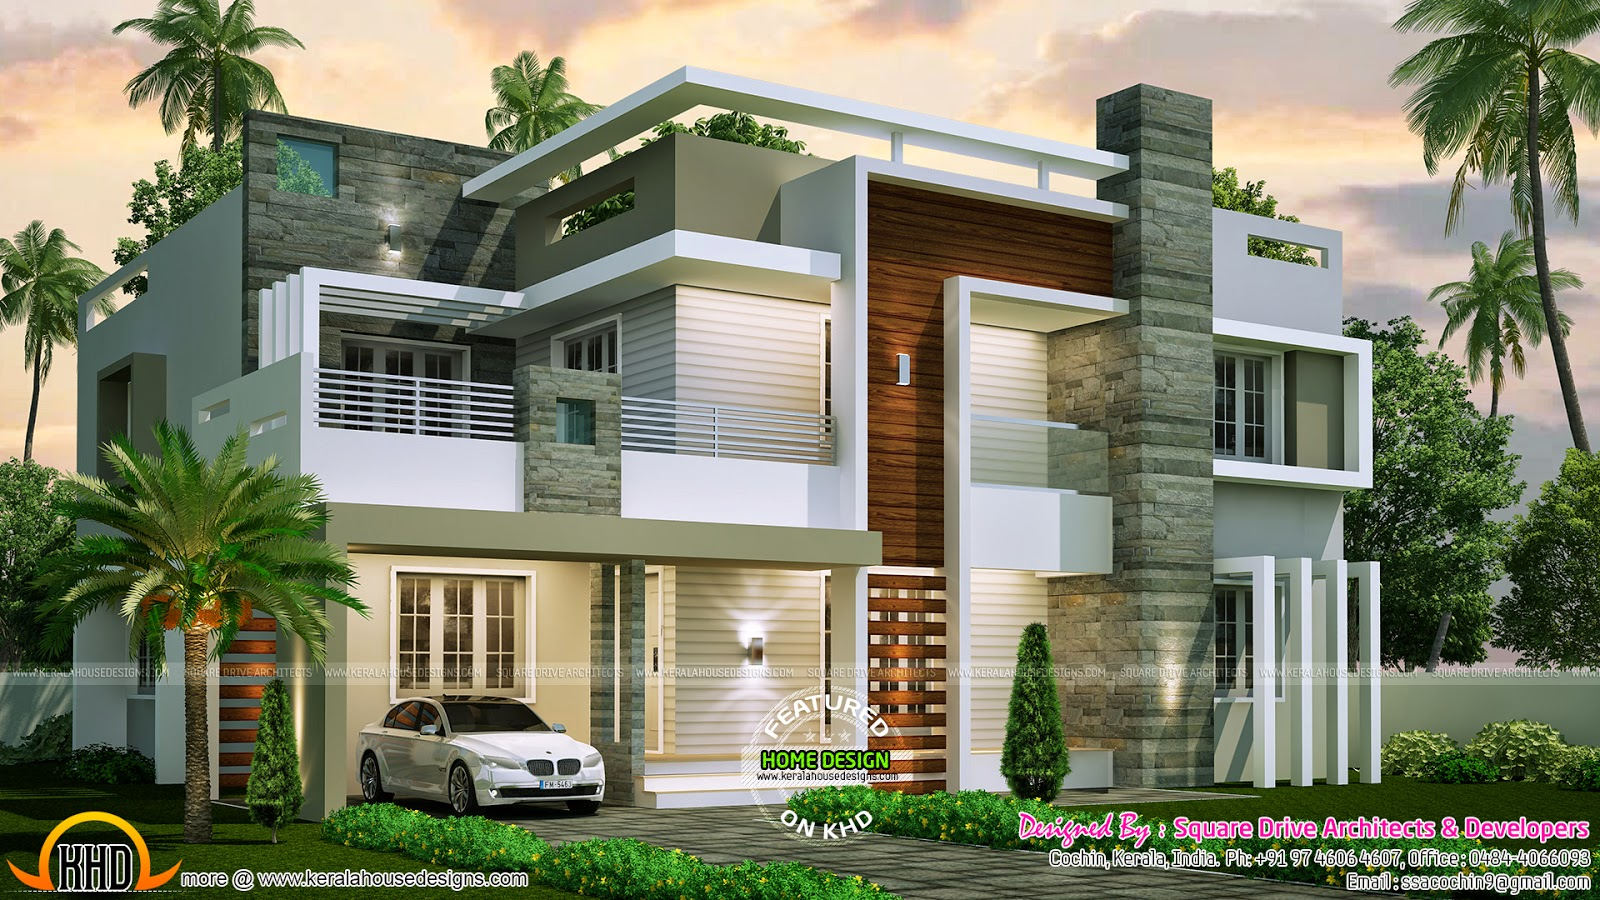 4 bedroom contemporary home design kerala home design for Design house